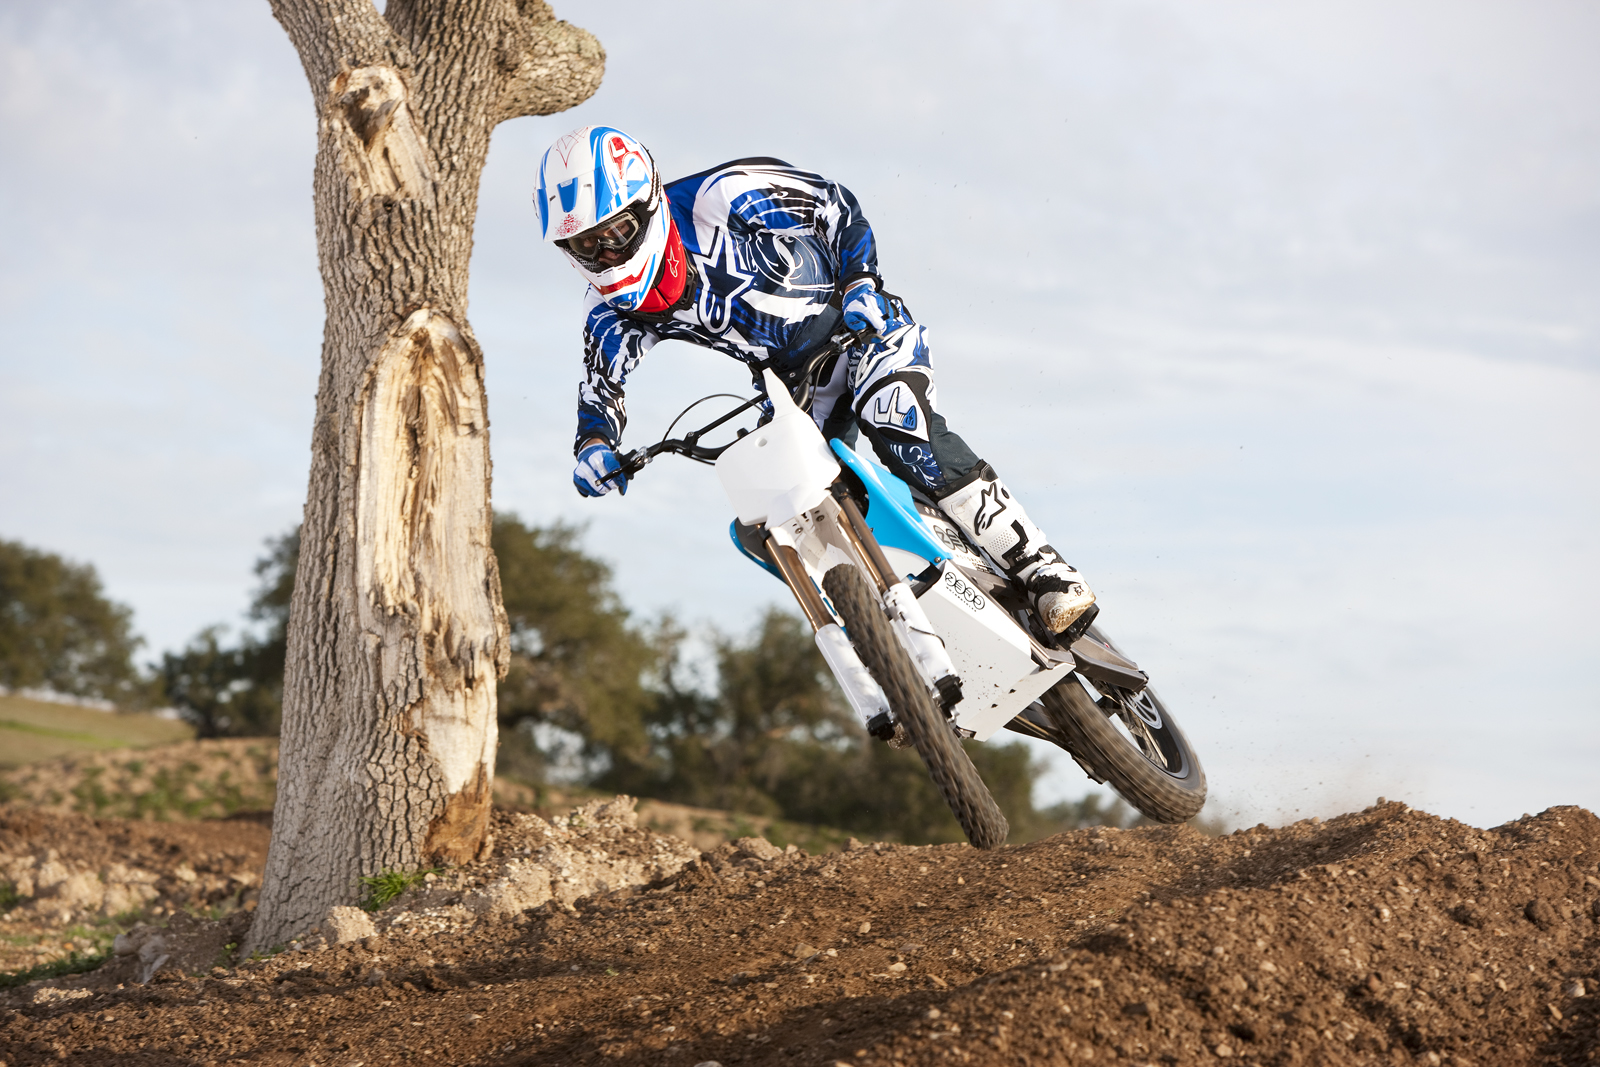 '.2010 Zero MX Electric Motorcycle: Zaca Station - Rider Jumps by Old Oak.'